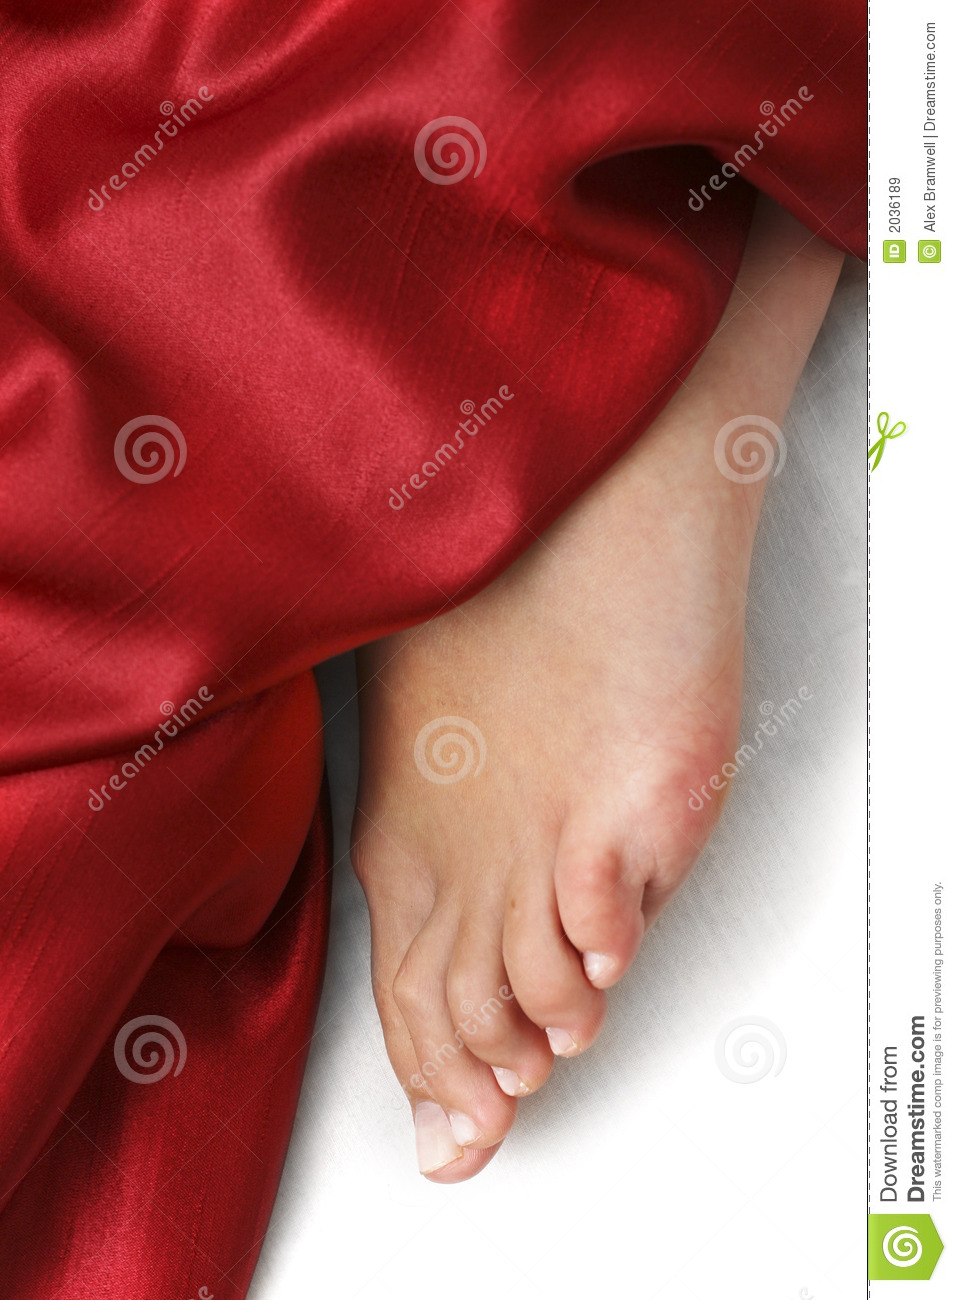 Woman Wrapped In Red Cloth 2 Stock Photo - Getty Images